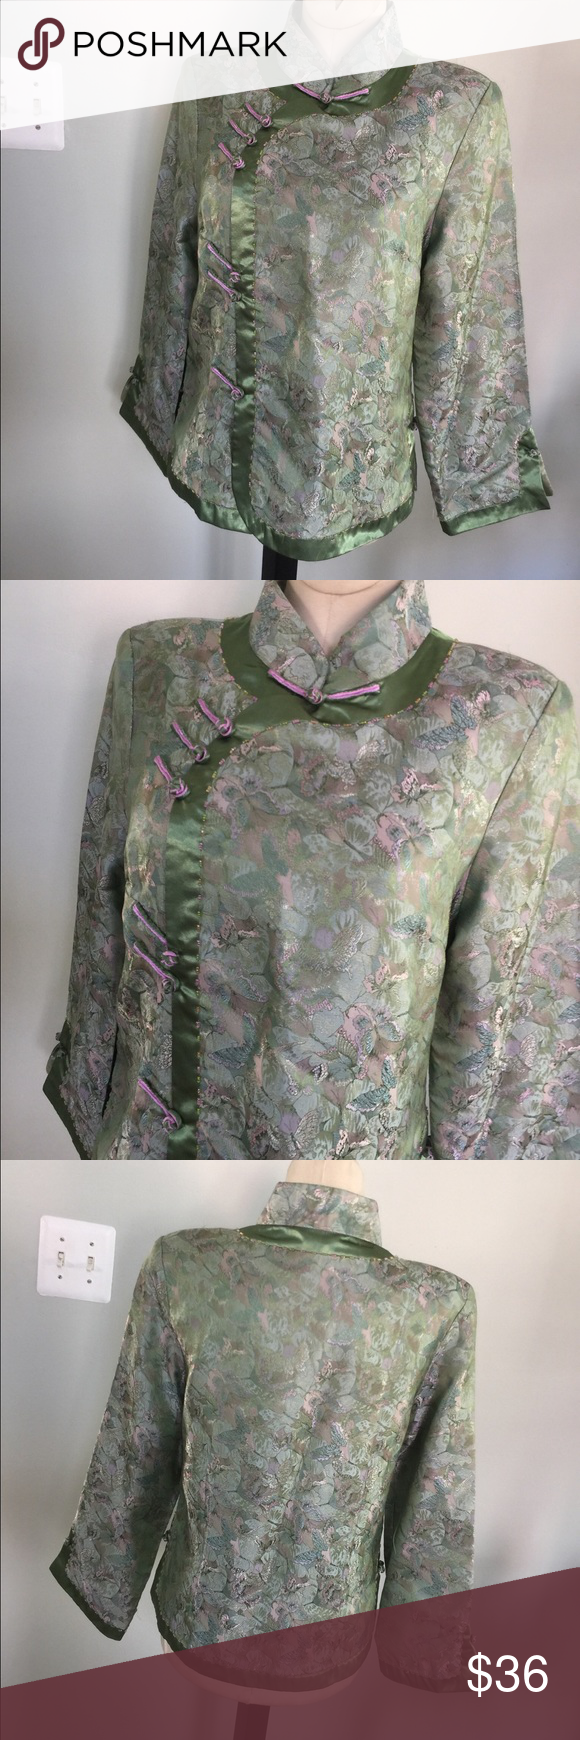 """Silk oriental Jacket/Top Top/Jacket tag reads a Sz L(but fits like a size M)I'm a Sz 4/6 and can wear this and also have some room.Measures bust 38"""" ,26"""" length.Very nice condition. Tops"""